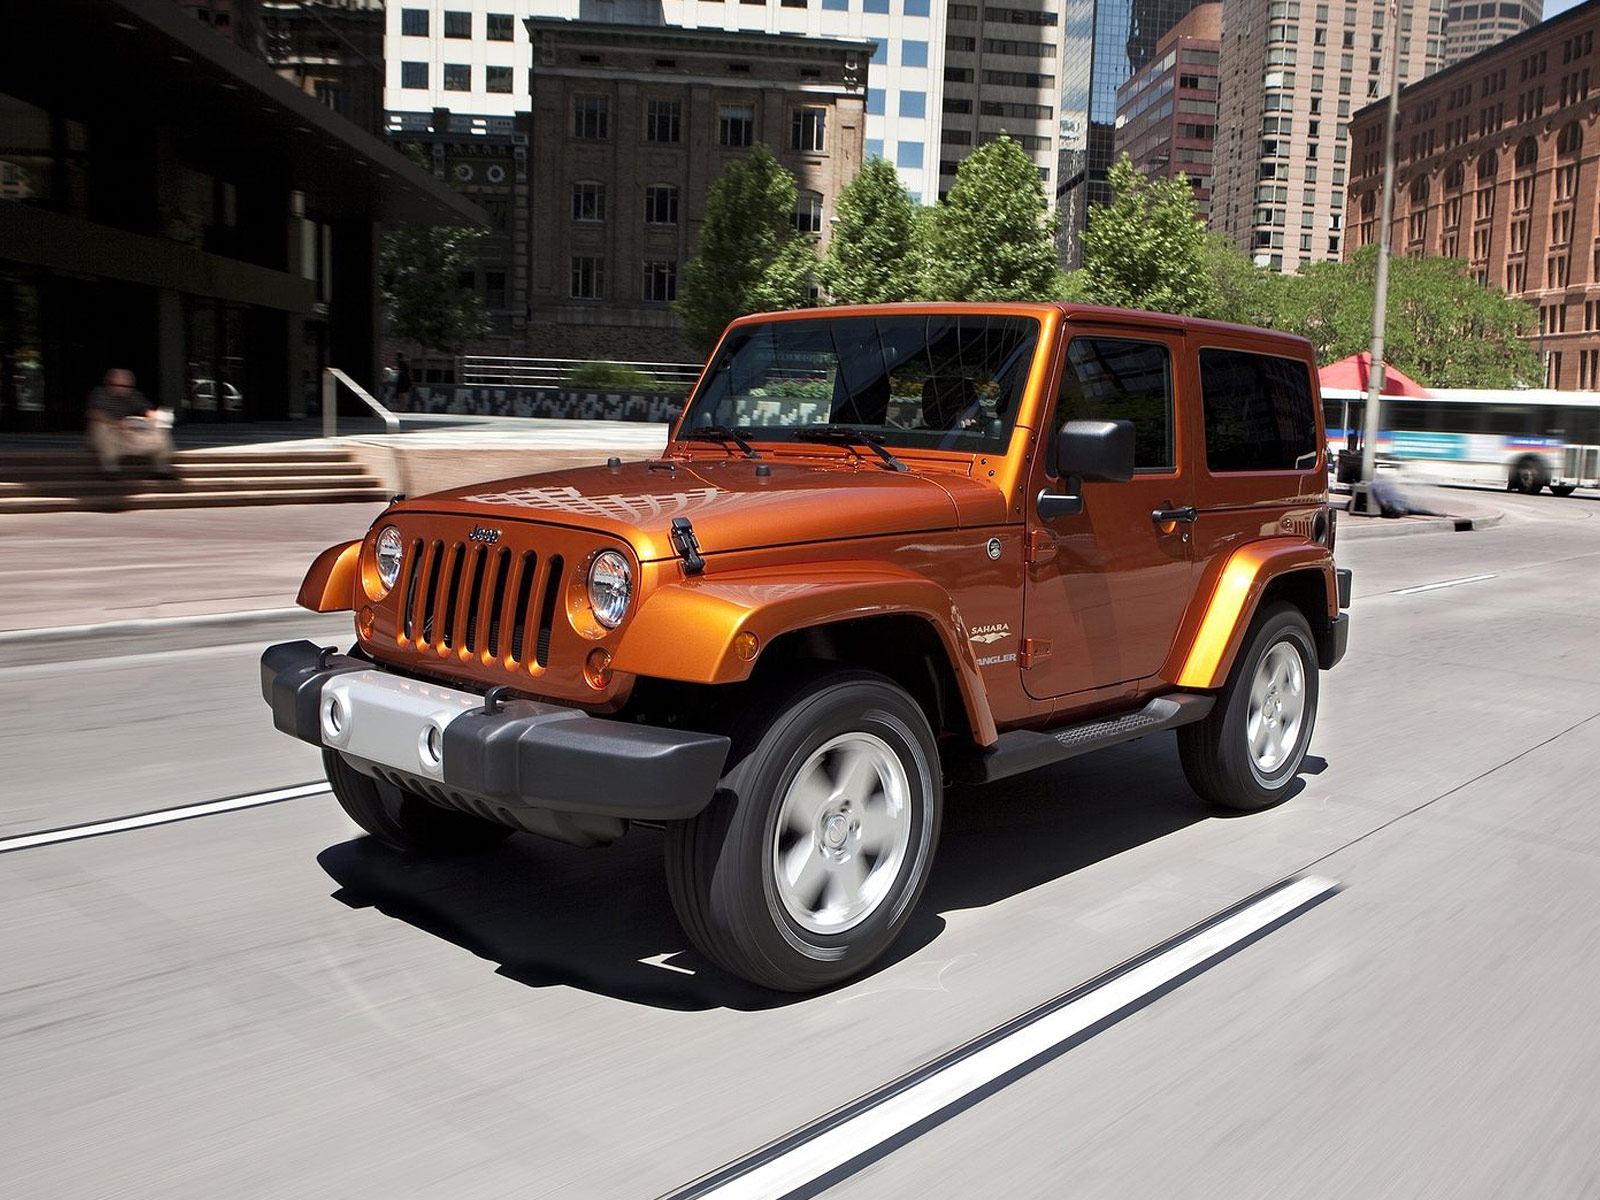 2011 jeep wrangler jeep pictures review. Black Bedroom Furniture Sets. Home Design Ideas